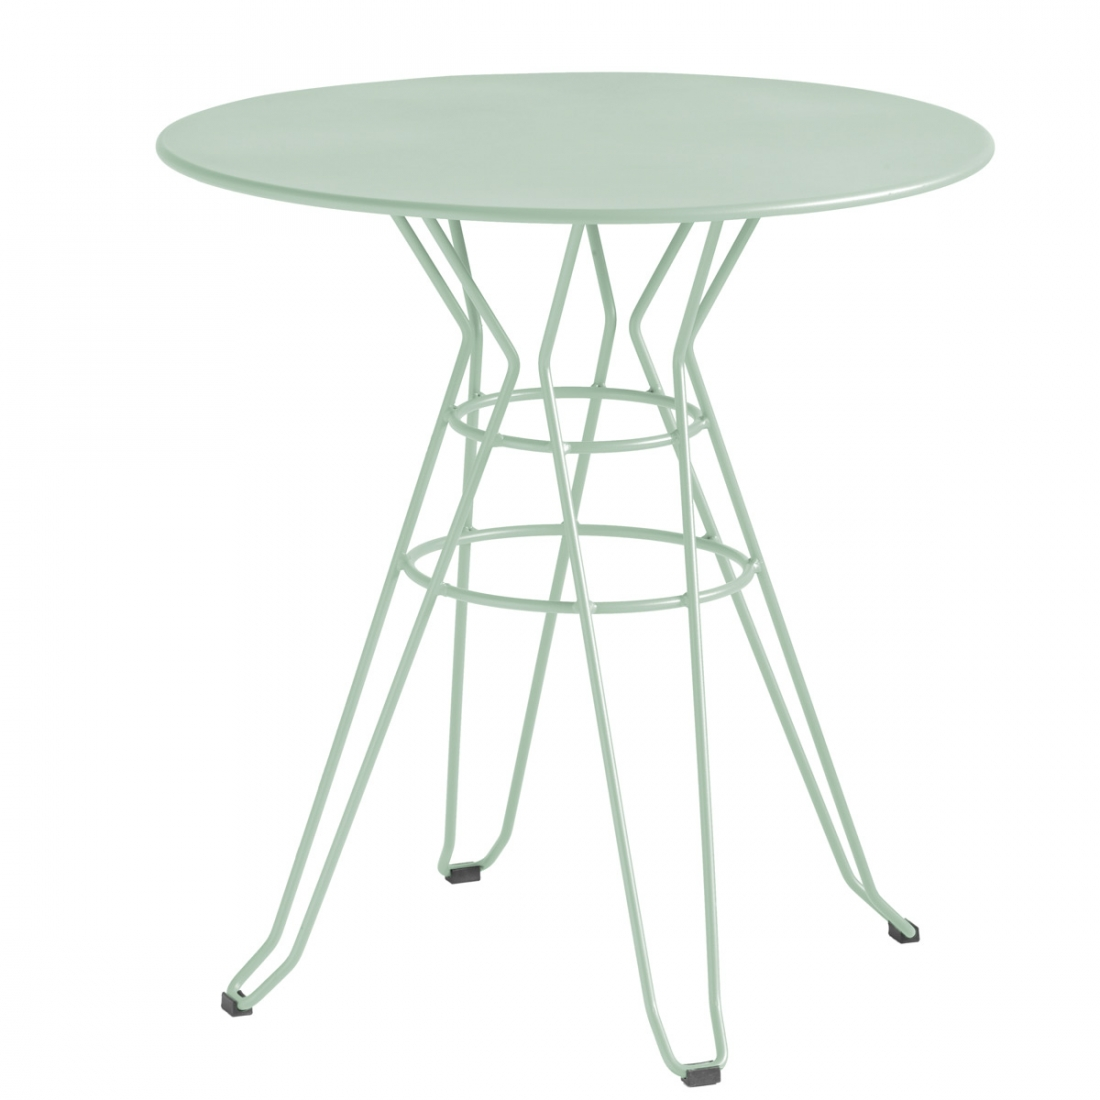 Table de repas d ext rieur ronde capri isimar for Table repas ronde